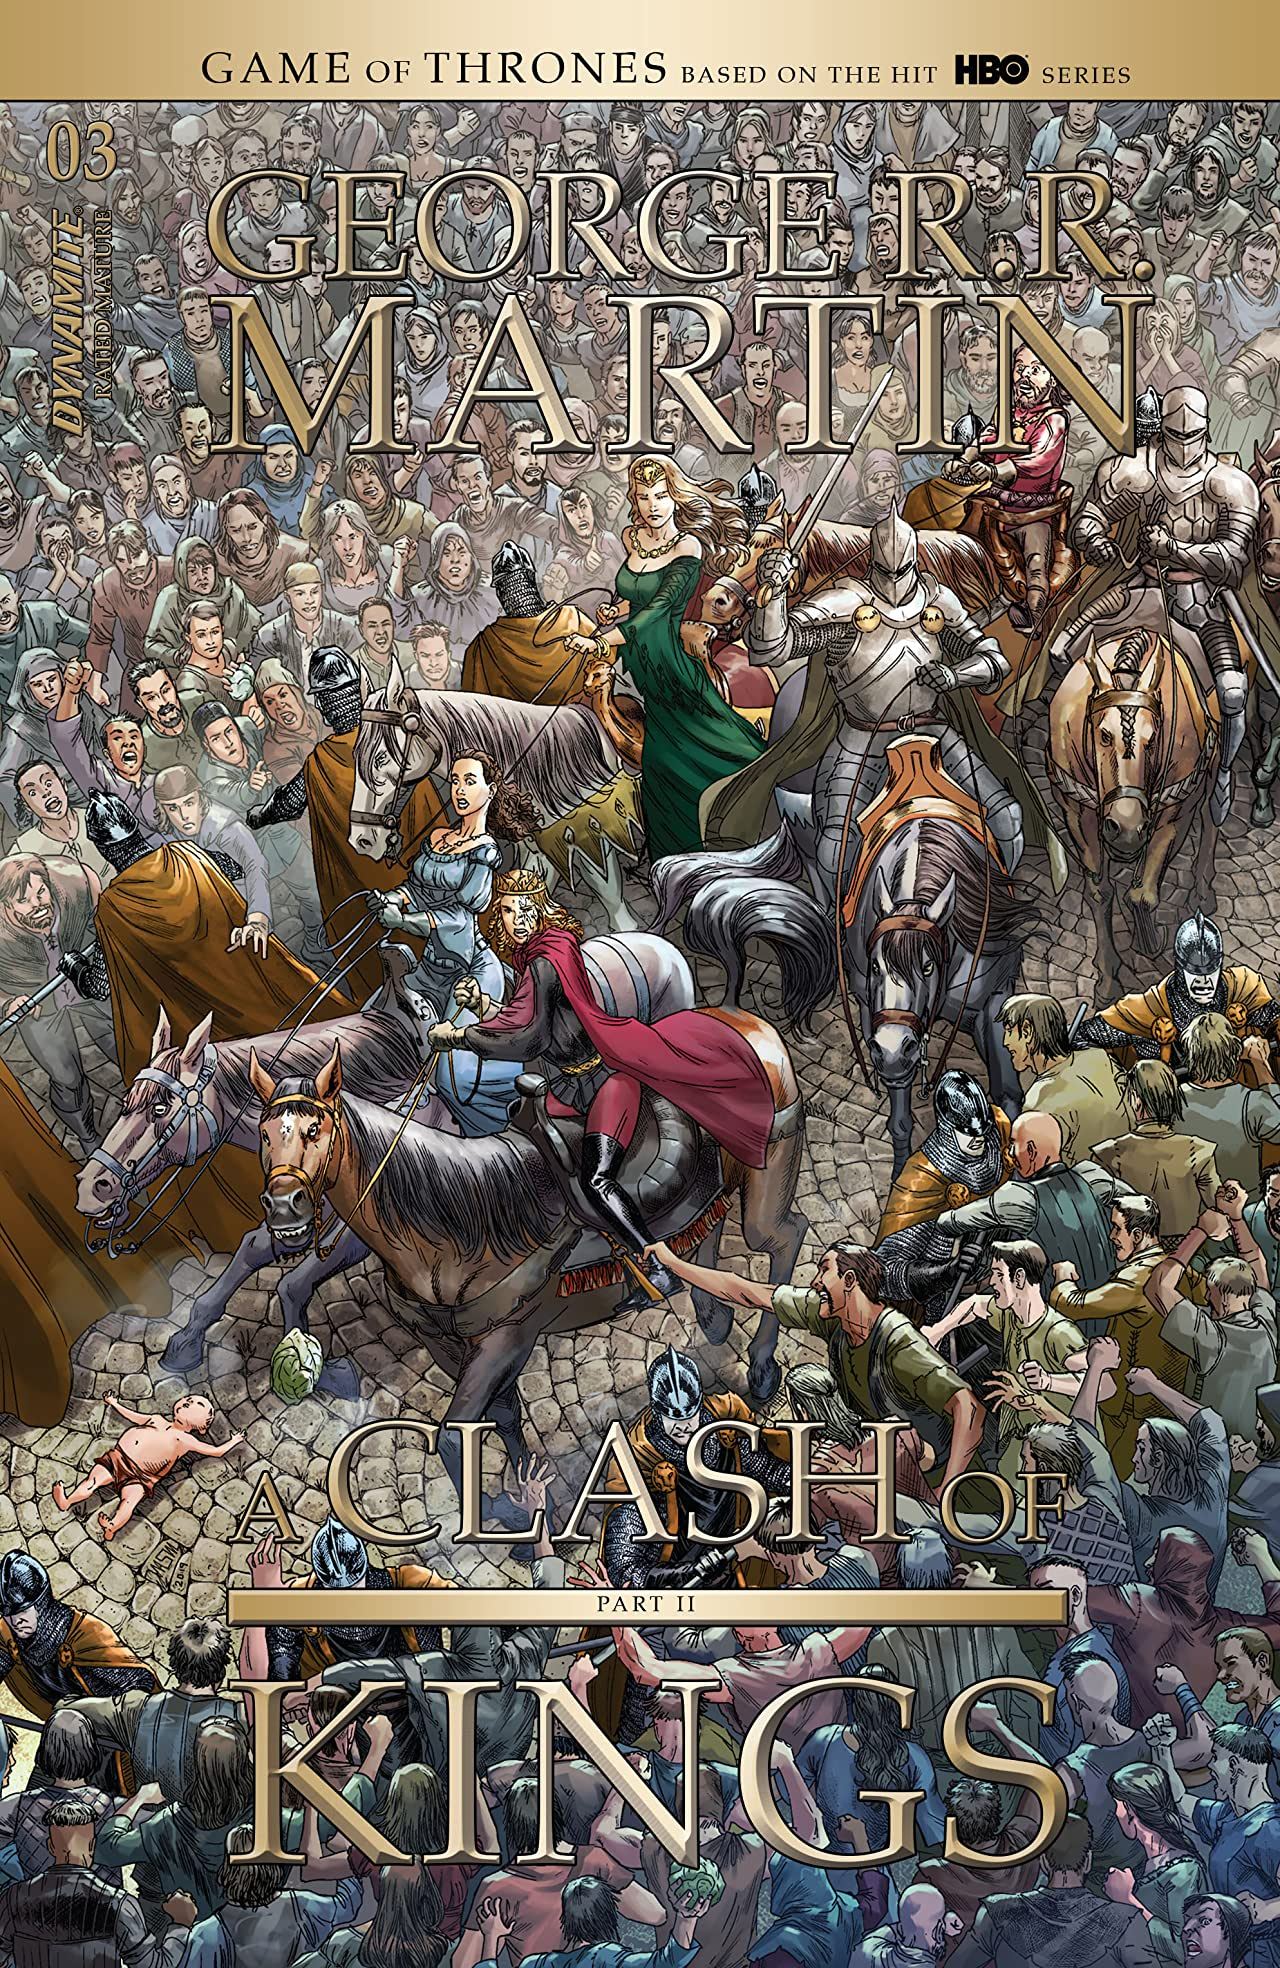 George R.R. Martin's A Clash Of Kings: The Comic Book Vol. 2 #3